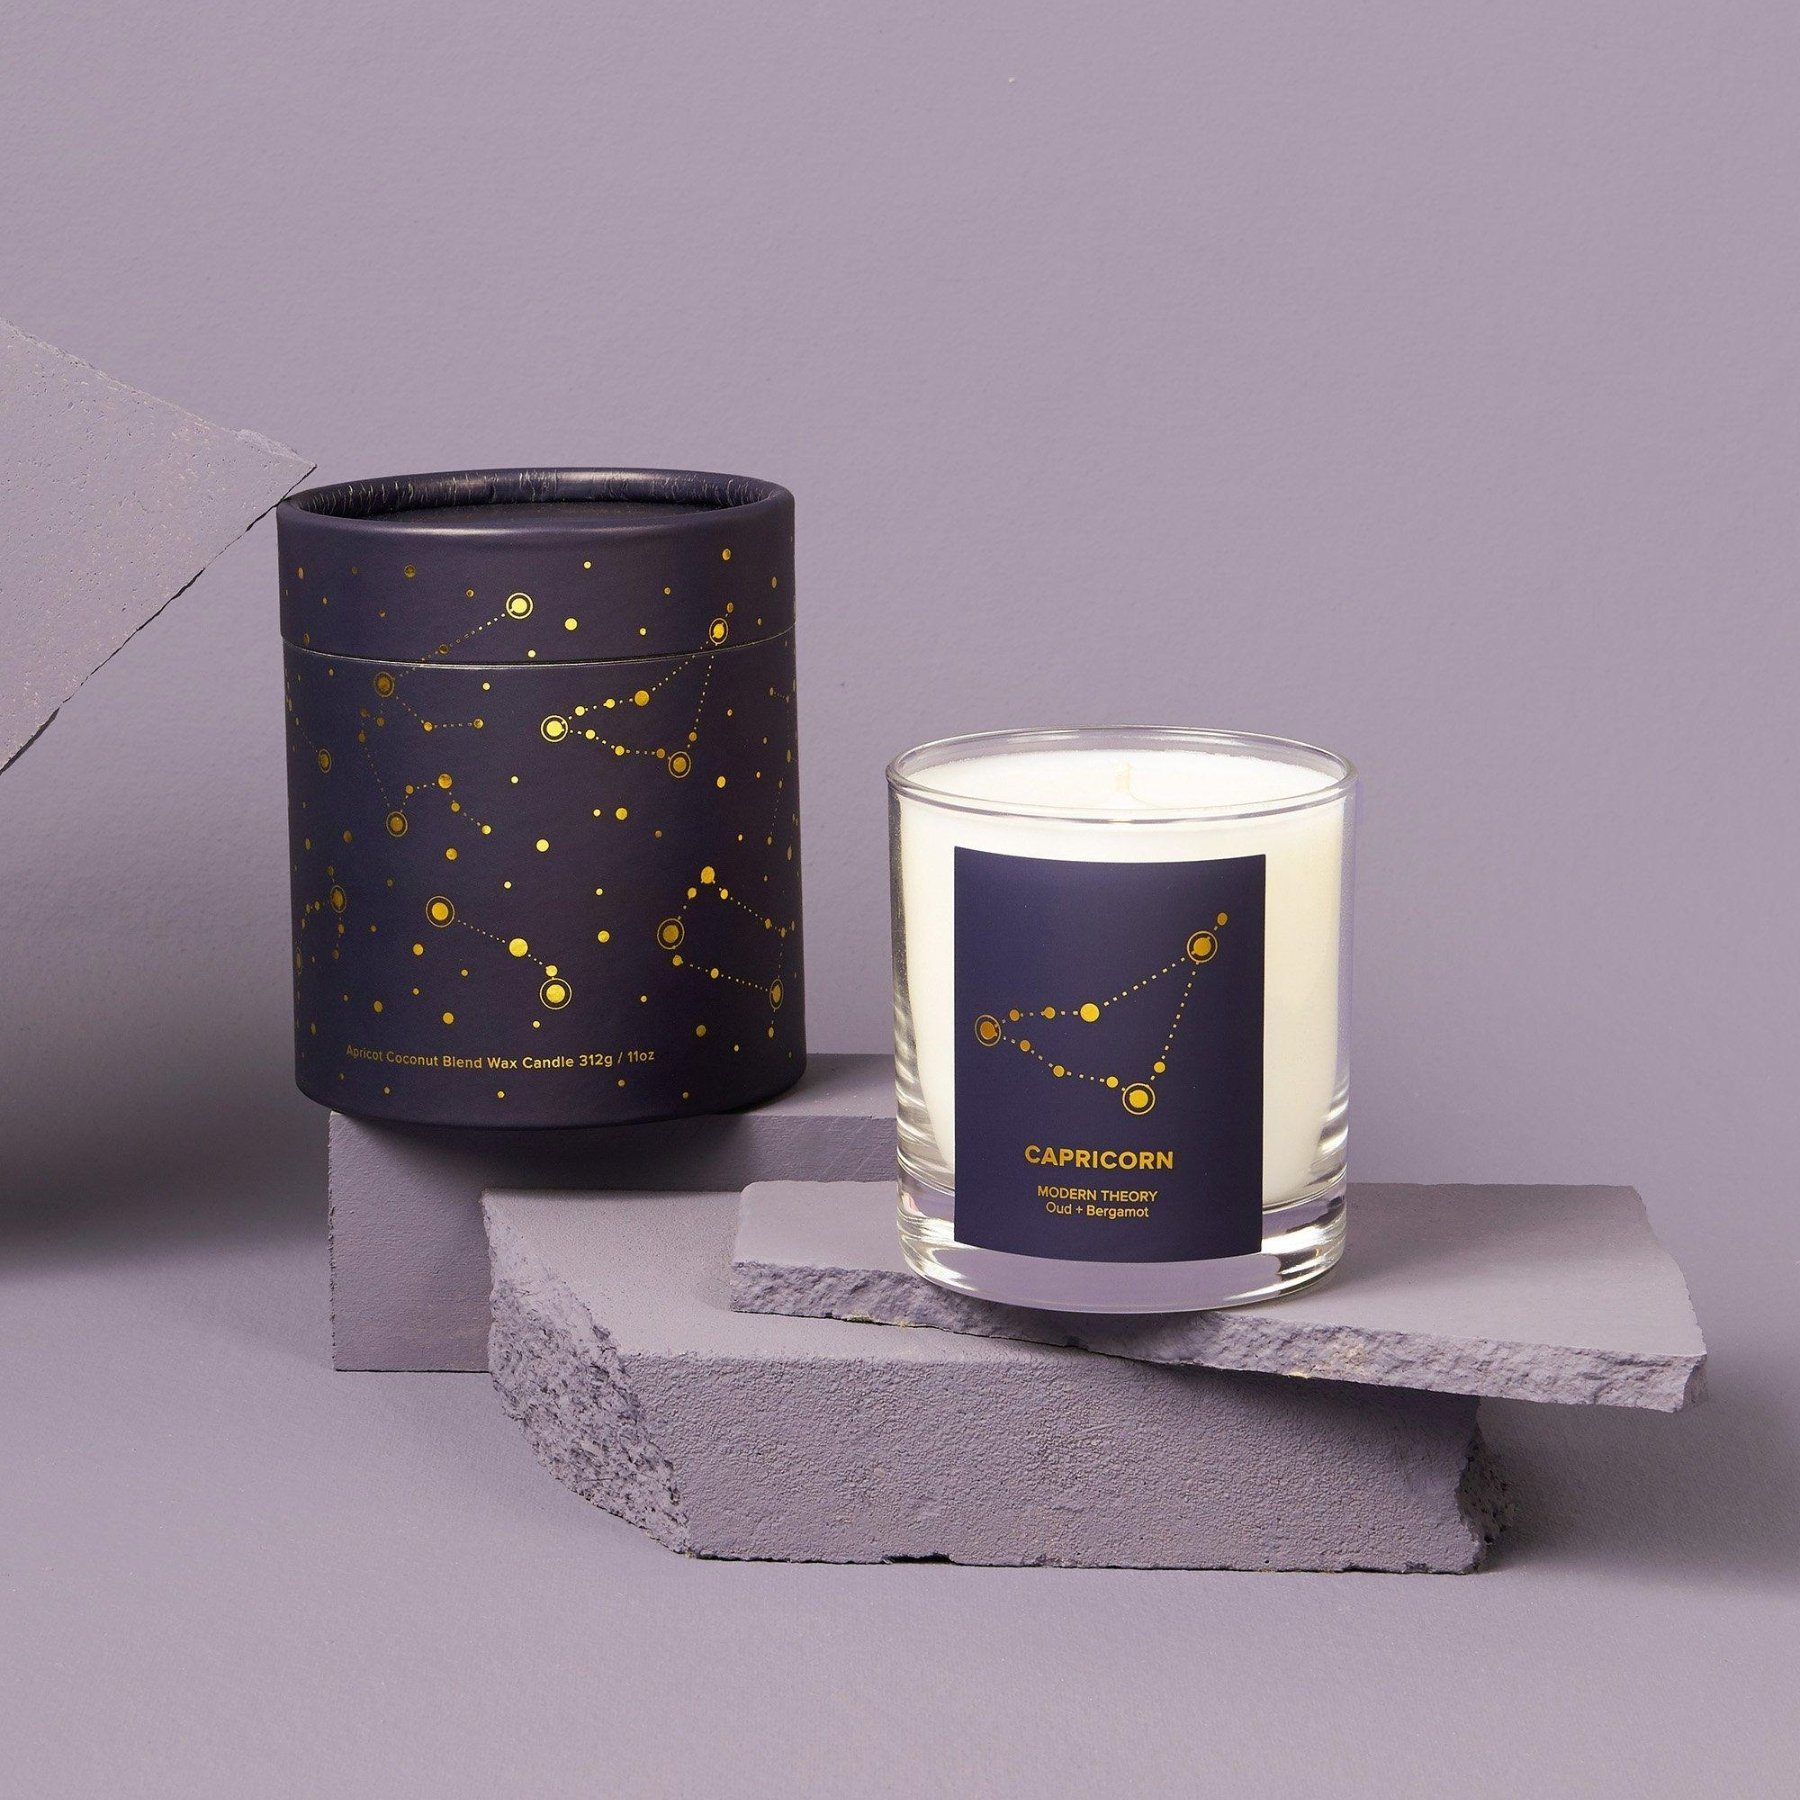 white candle in glass jar with capricorn label next to matching navy decorative box with astrology pattern